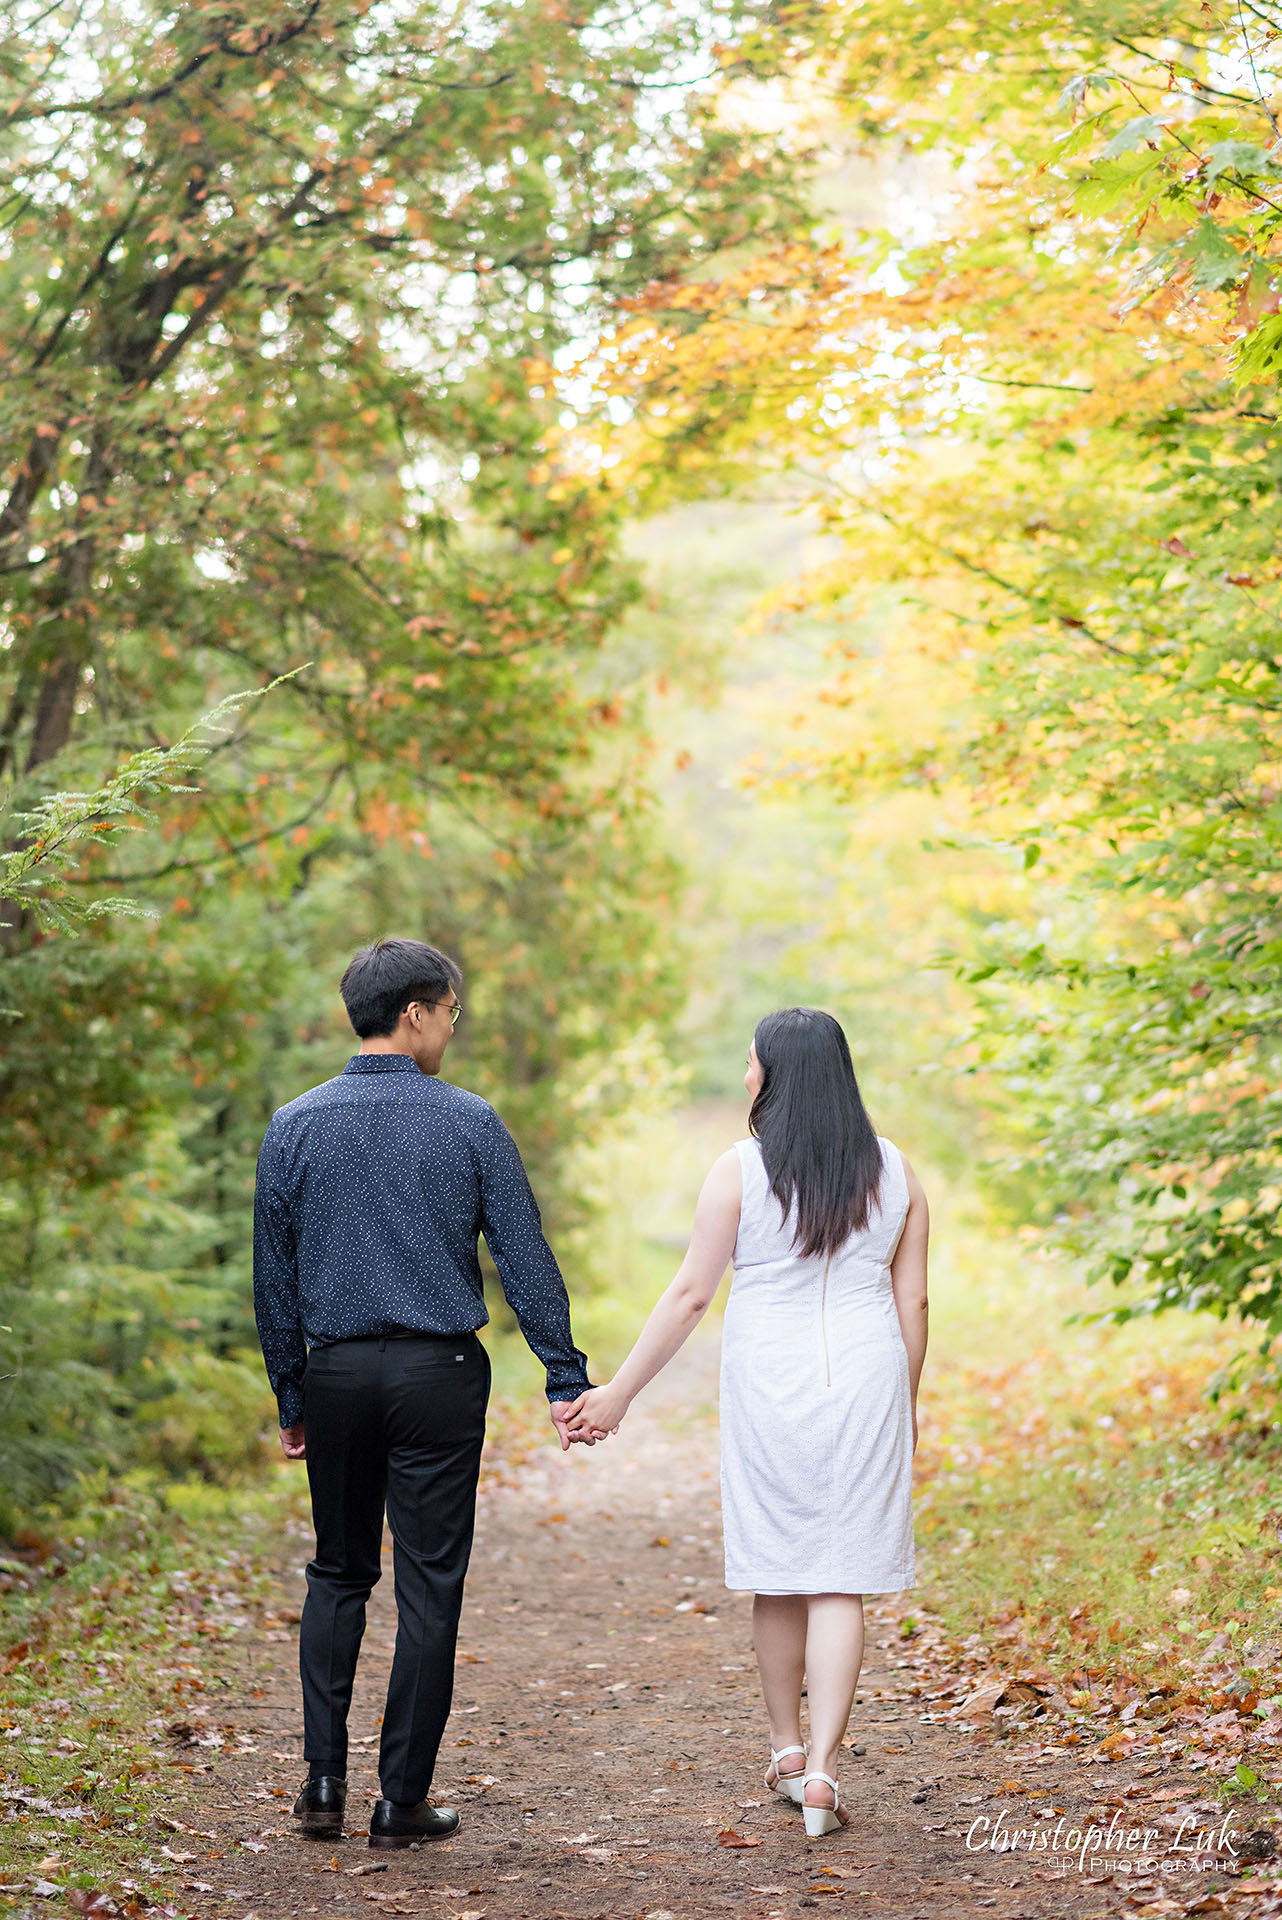 Christopher Luk Toronto Wedding Photographer Stouffville Forest Conservation Park Engagement Session Candid Natural Photojournalistic Bride Groom Walking Together Holding Hands Autumn Fall Leaves Vertical